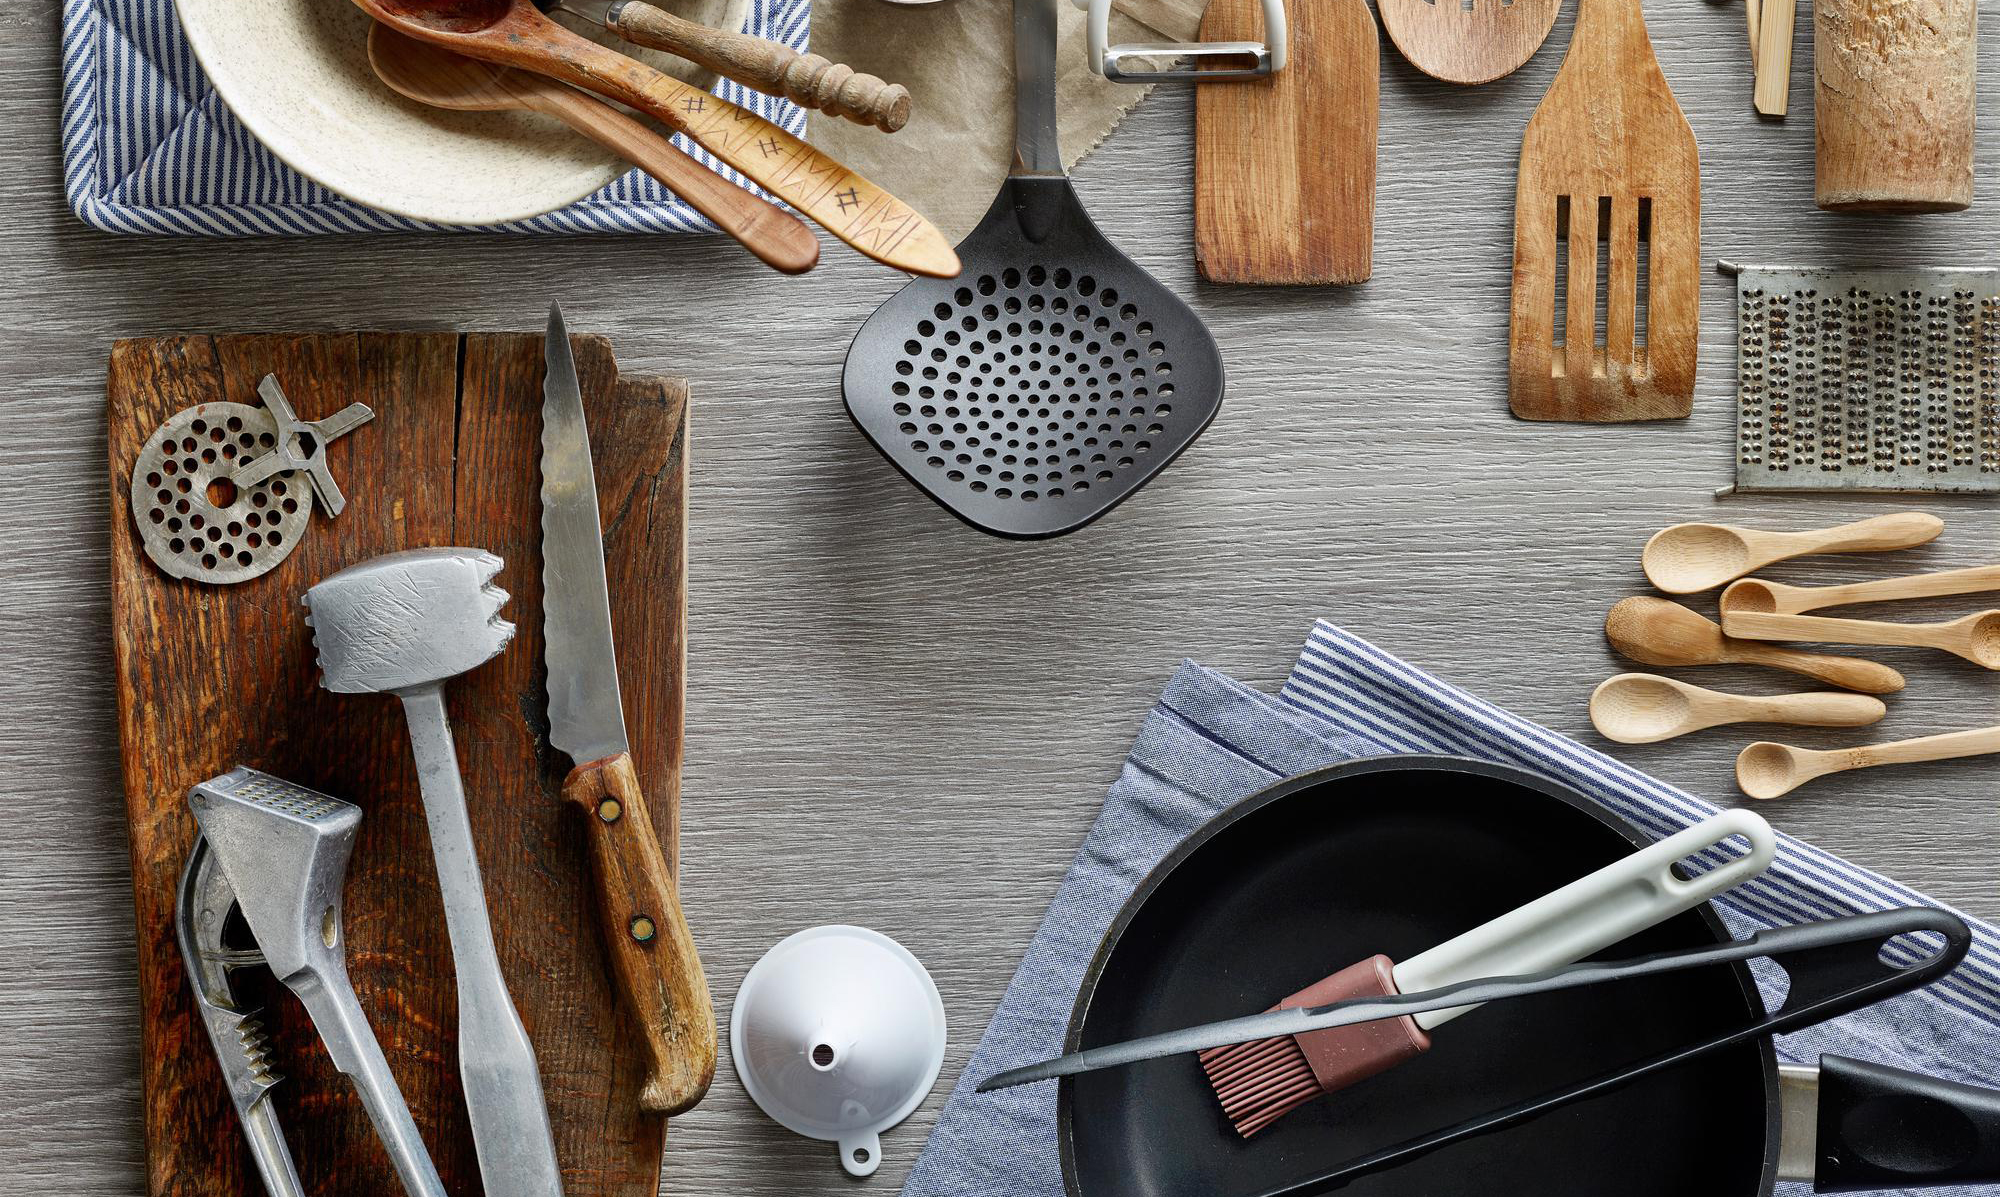 best-kitchen-tools-under-25-dollars-site